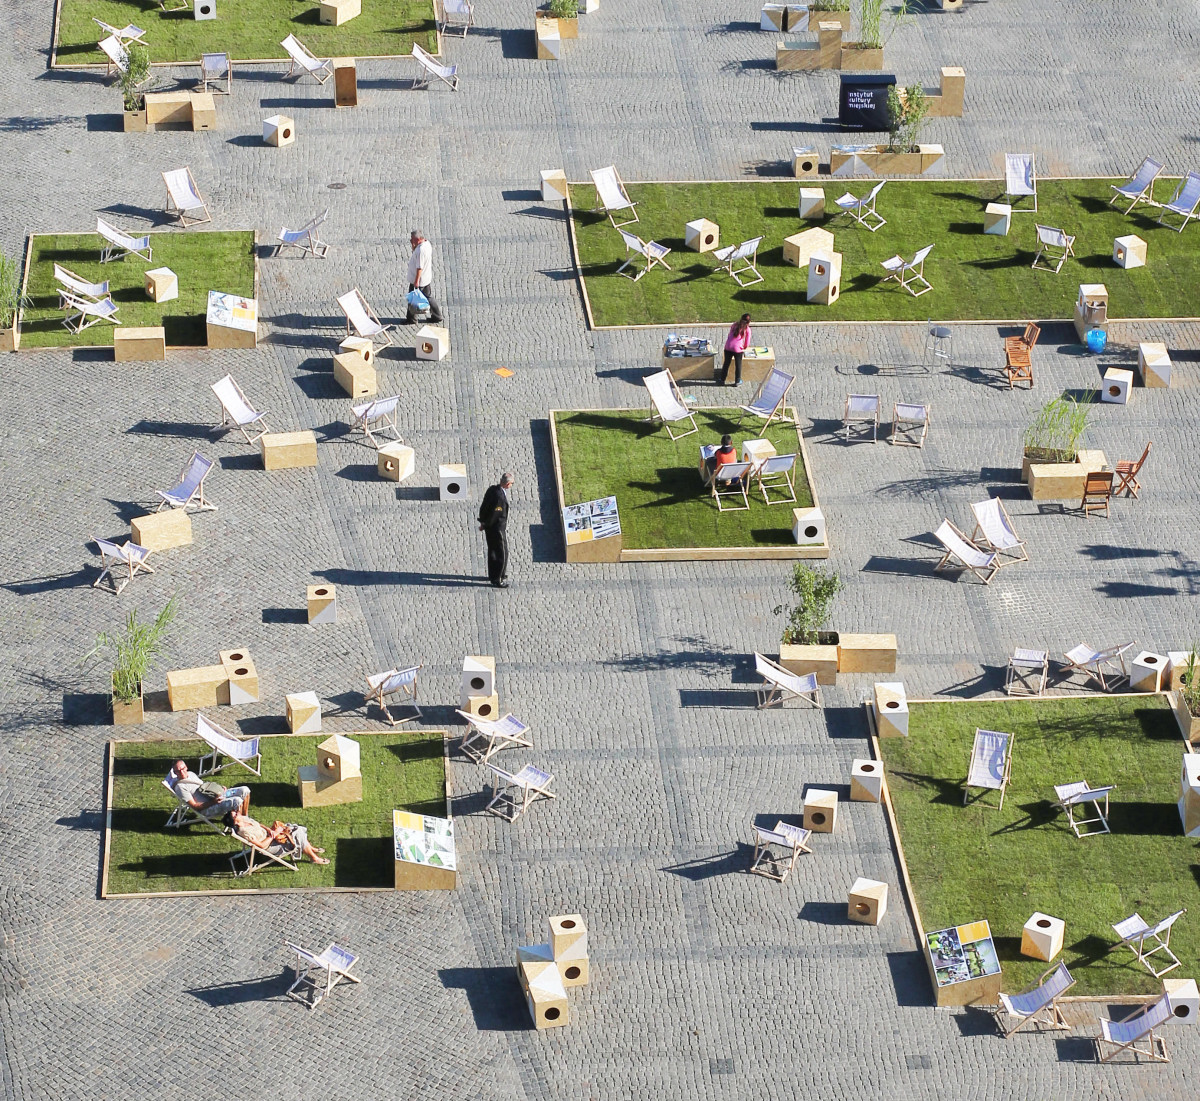 New public space on targ weglowy in gdansk by gdyby group for Interactive landscape design